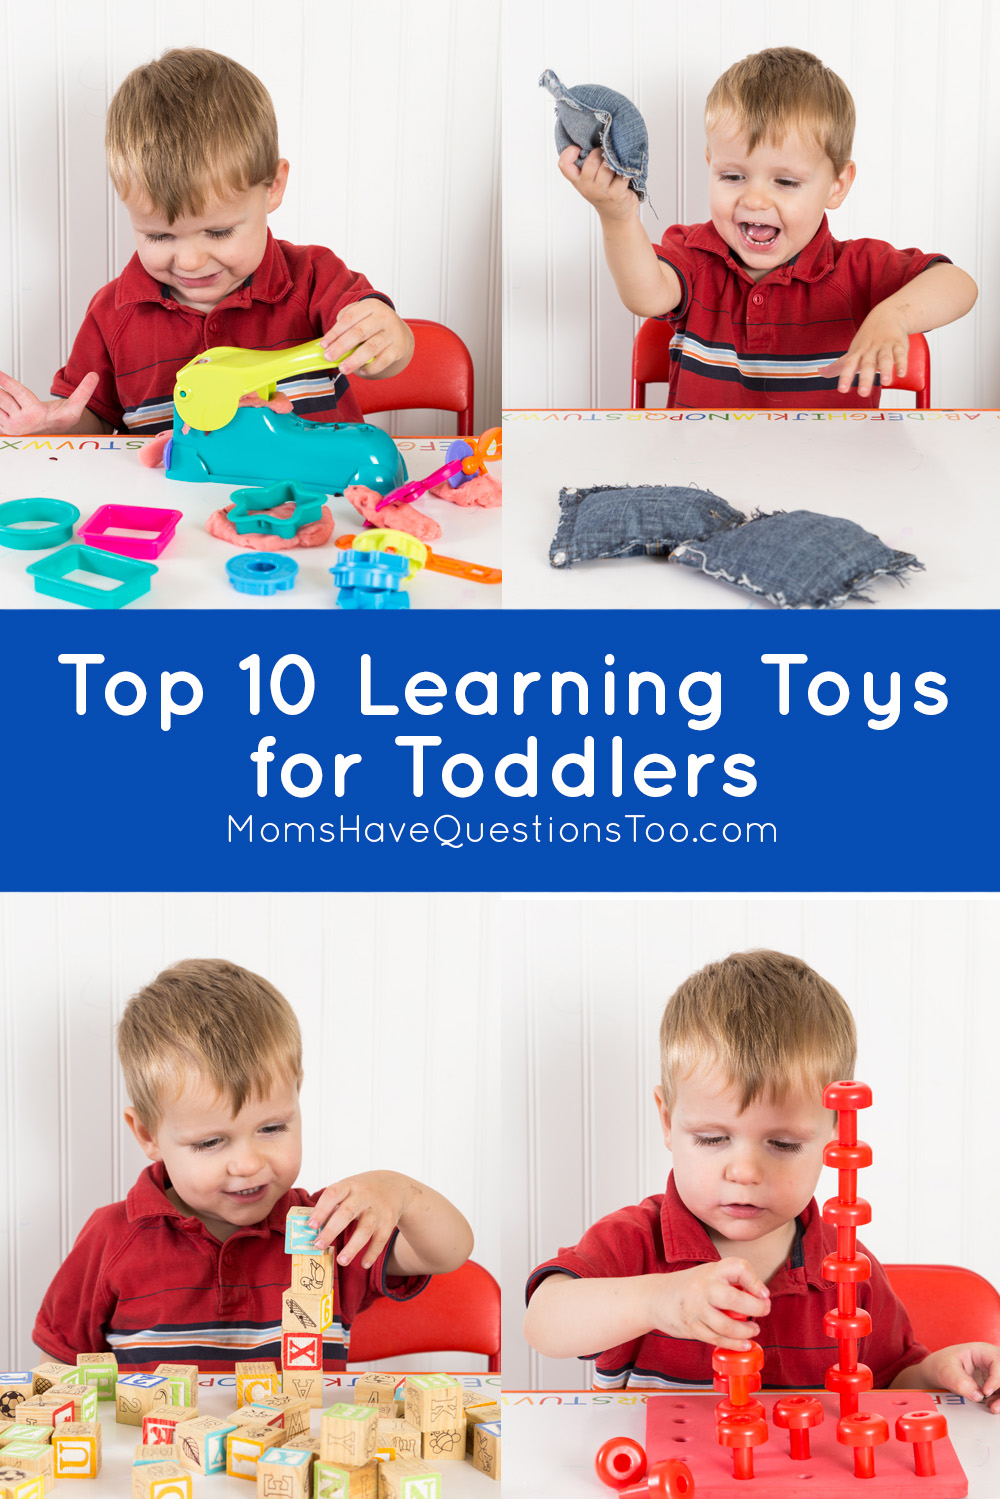 Toddler Educational Toys : Top learning toys for toddlers